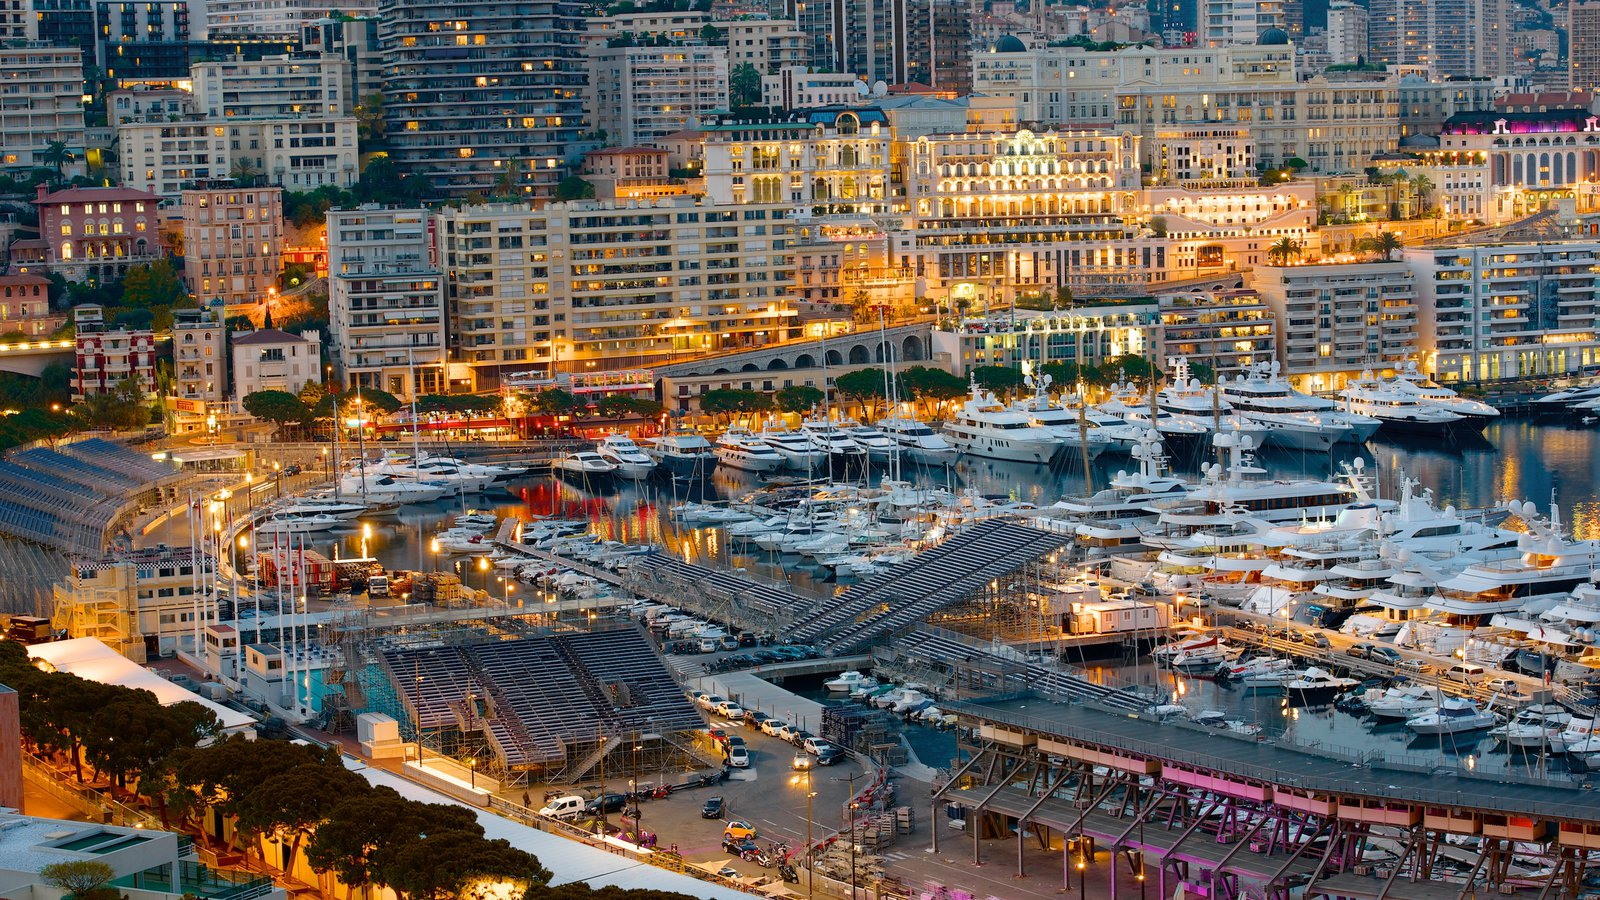 Monaco which includes a coastal town and a marina